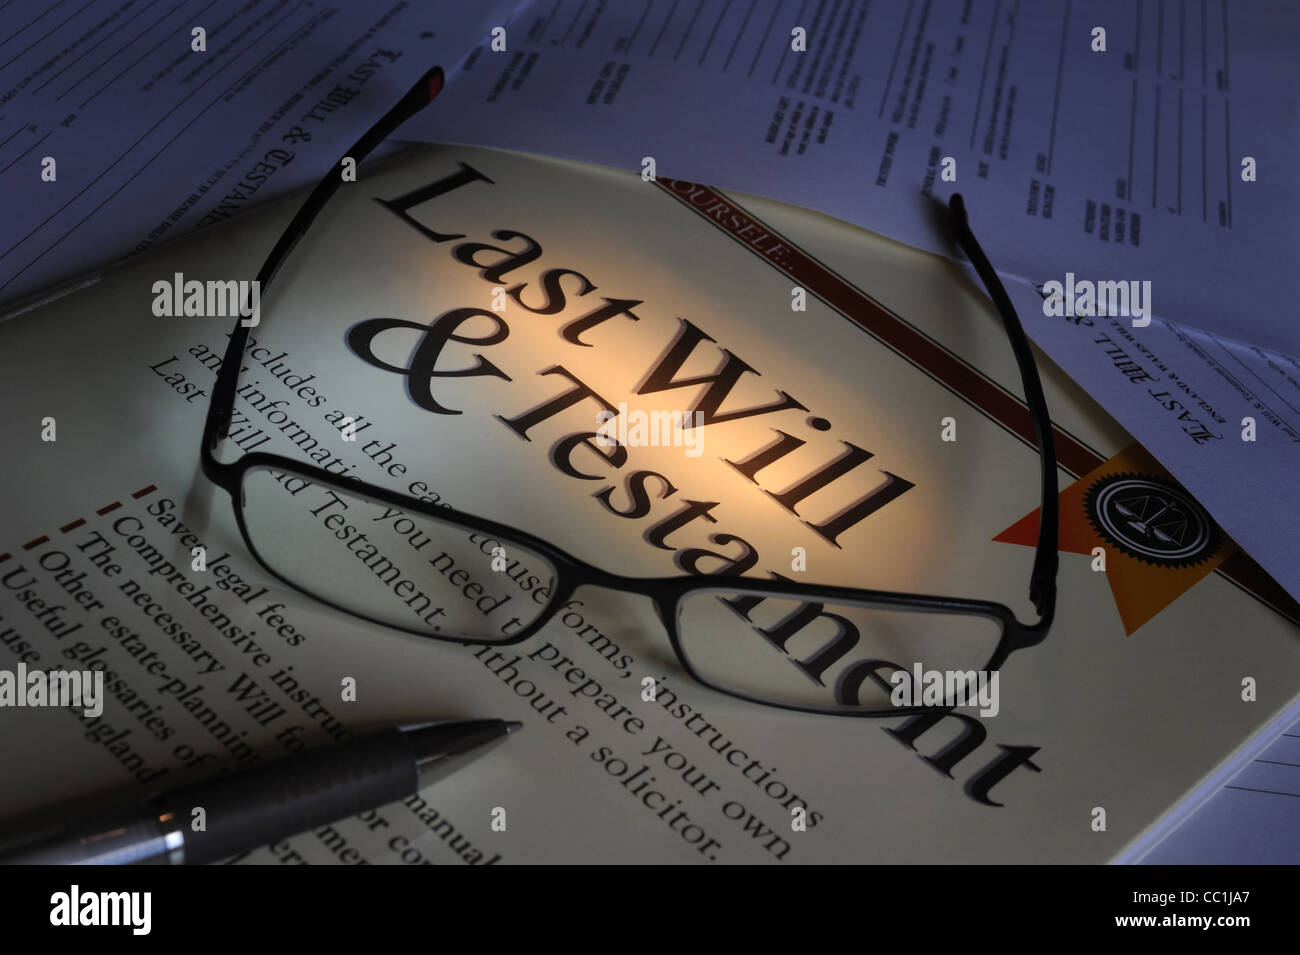 LAST WILL AND TESTAMENT FORMS WITH SPECTACLES RE MAKING A WILL ...